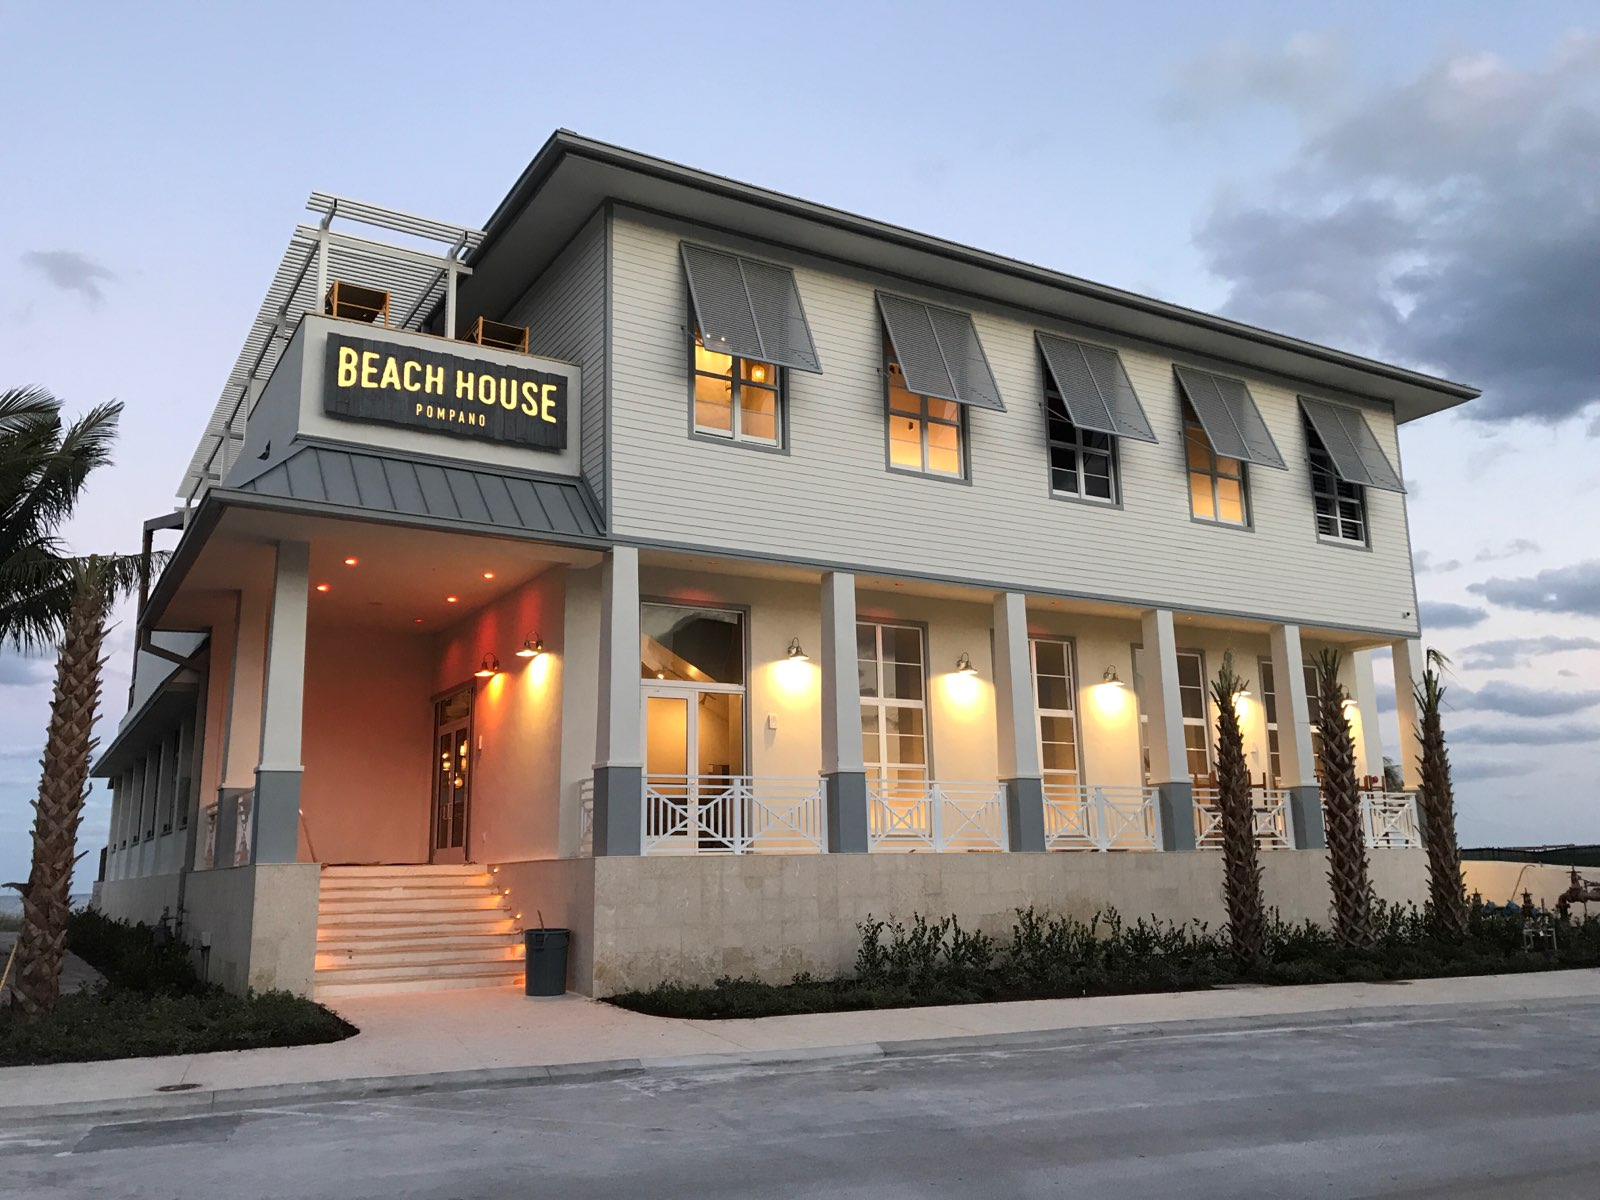 Pompano beach house restaurant gulf coast construction for Home restaurant